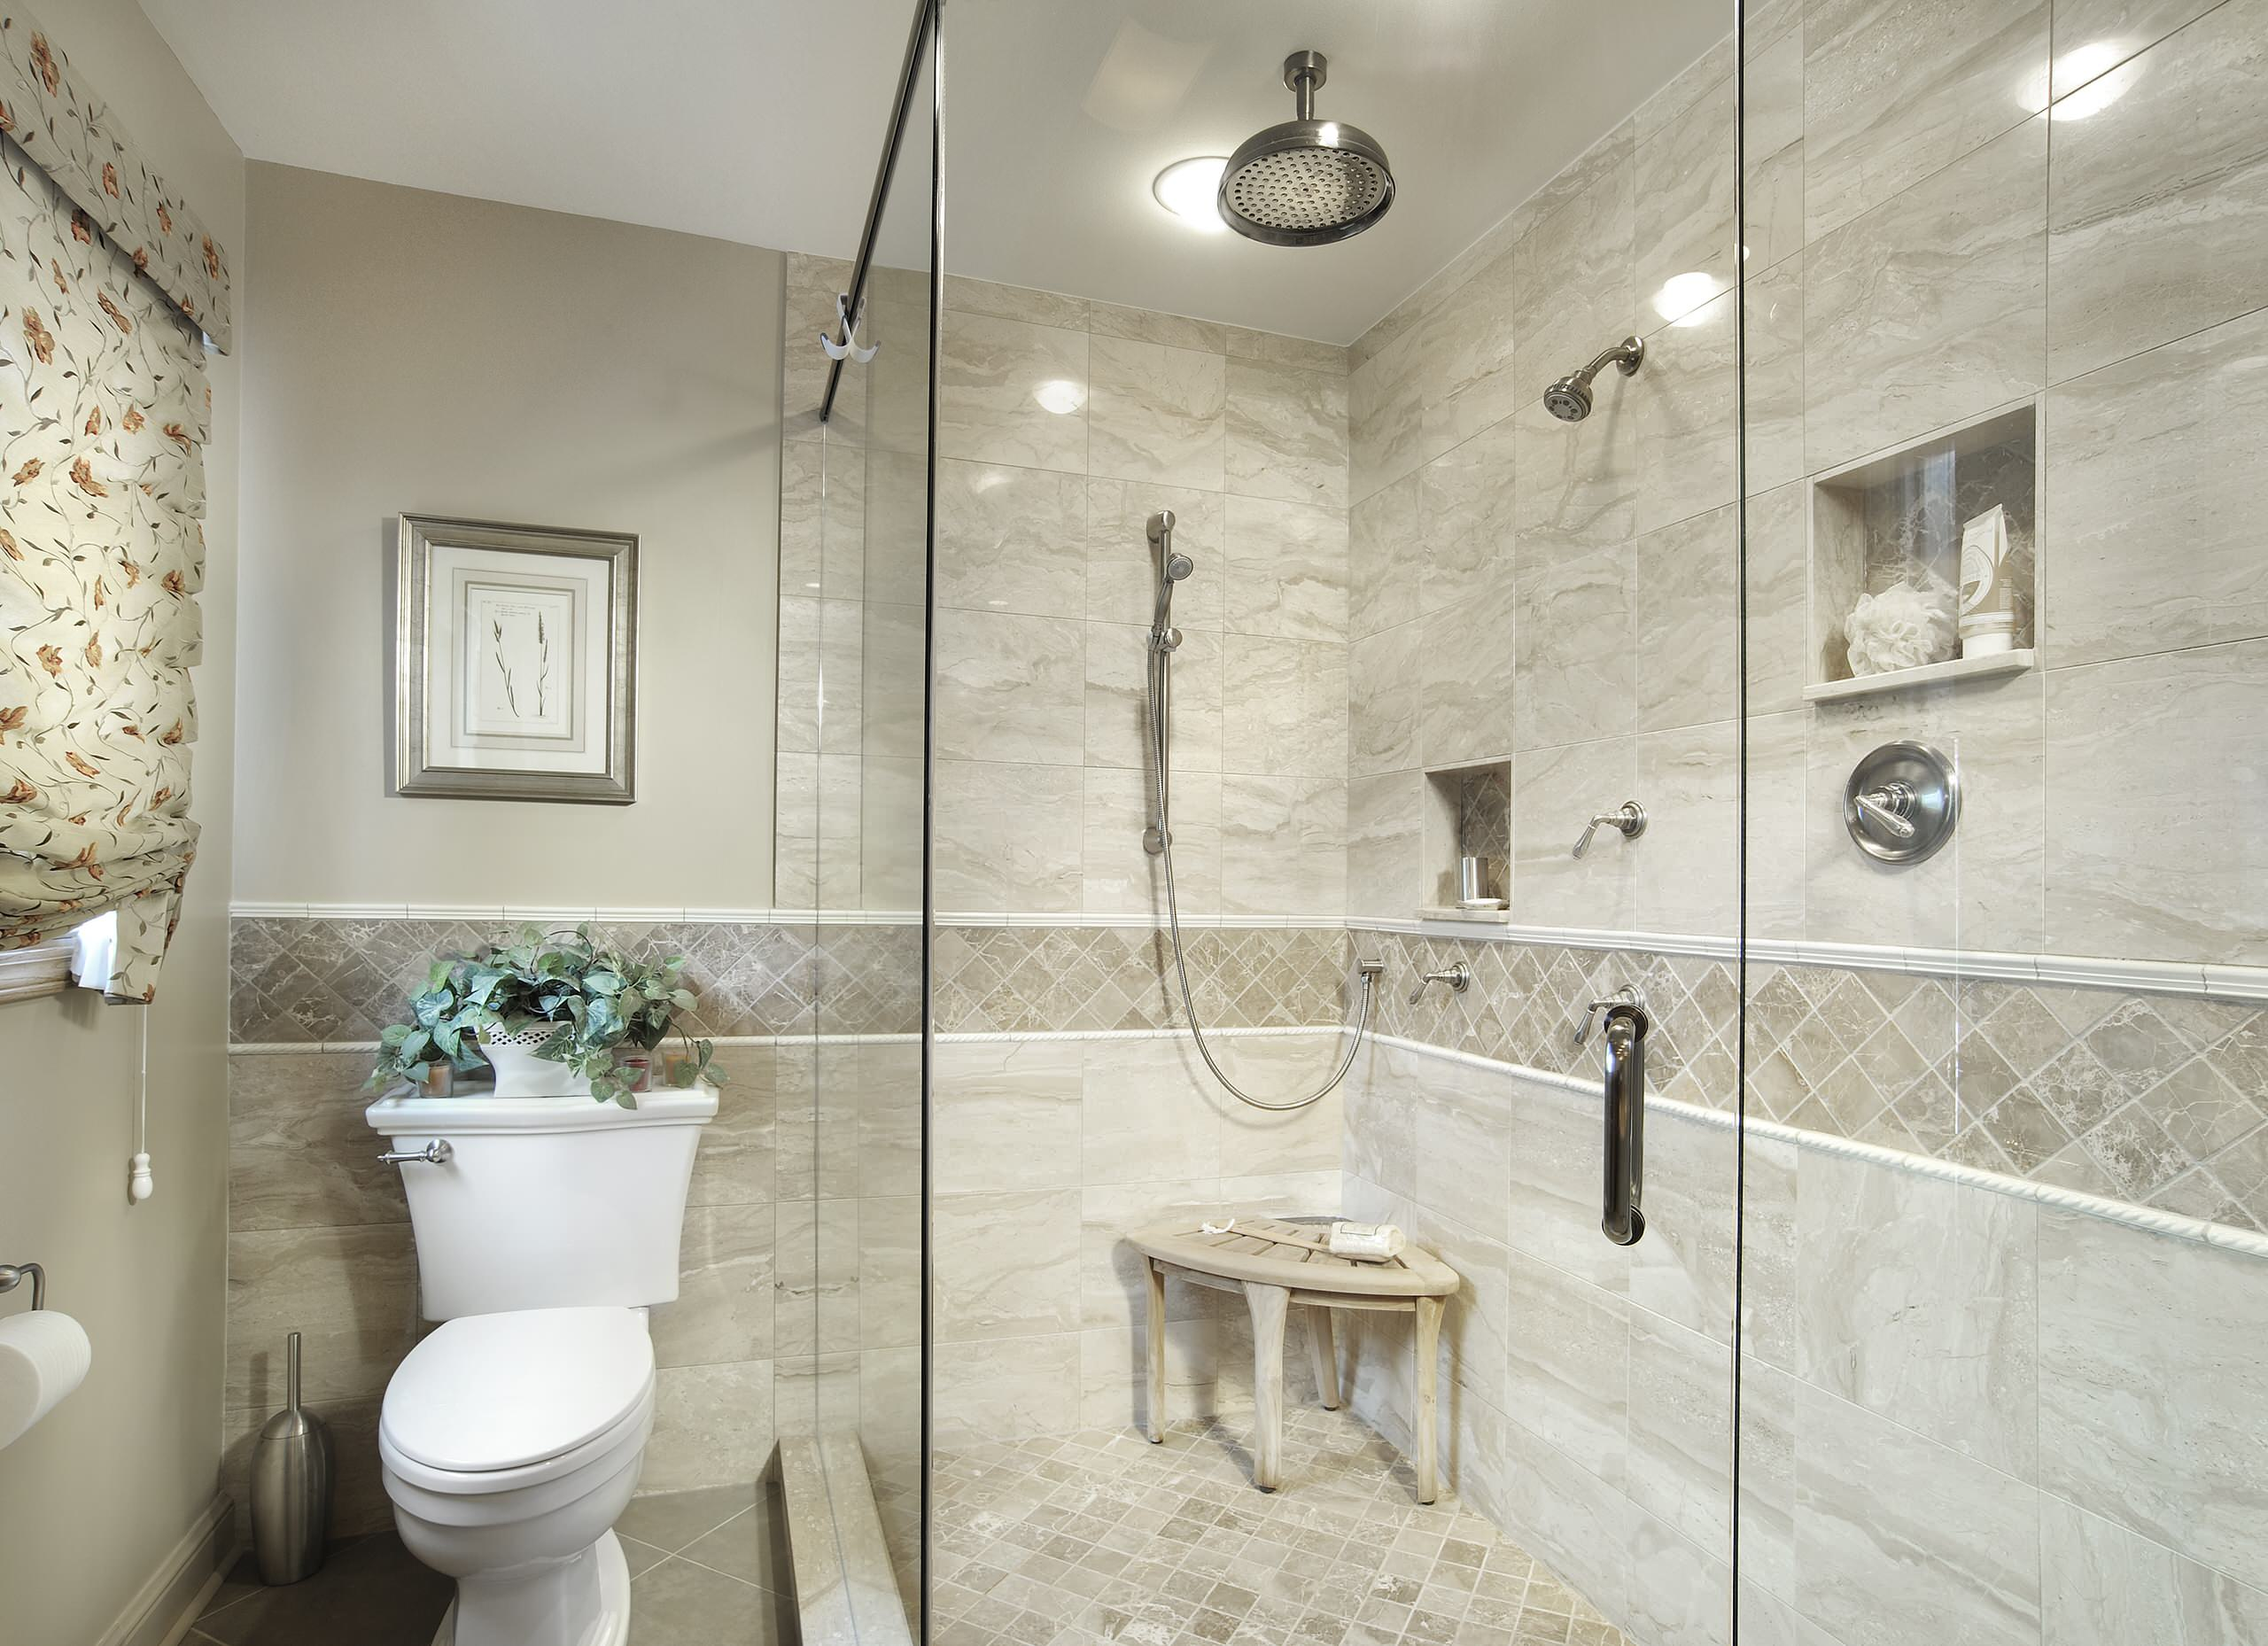 11 x 11 Bathroom Ideas & Photos  Houzz